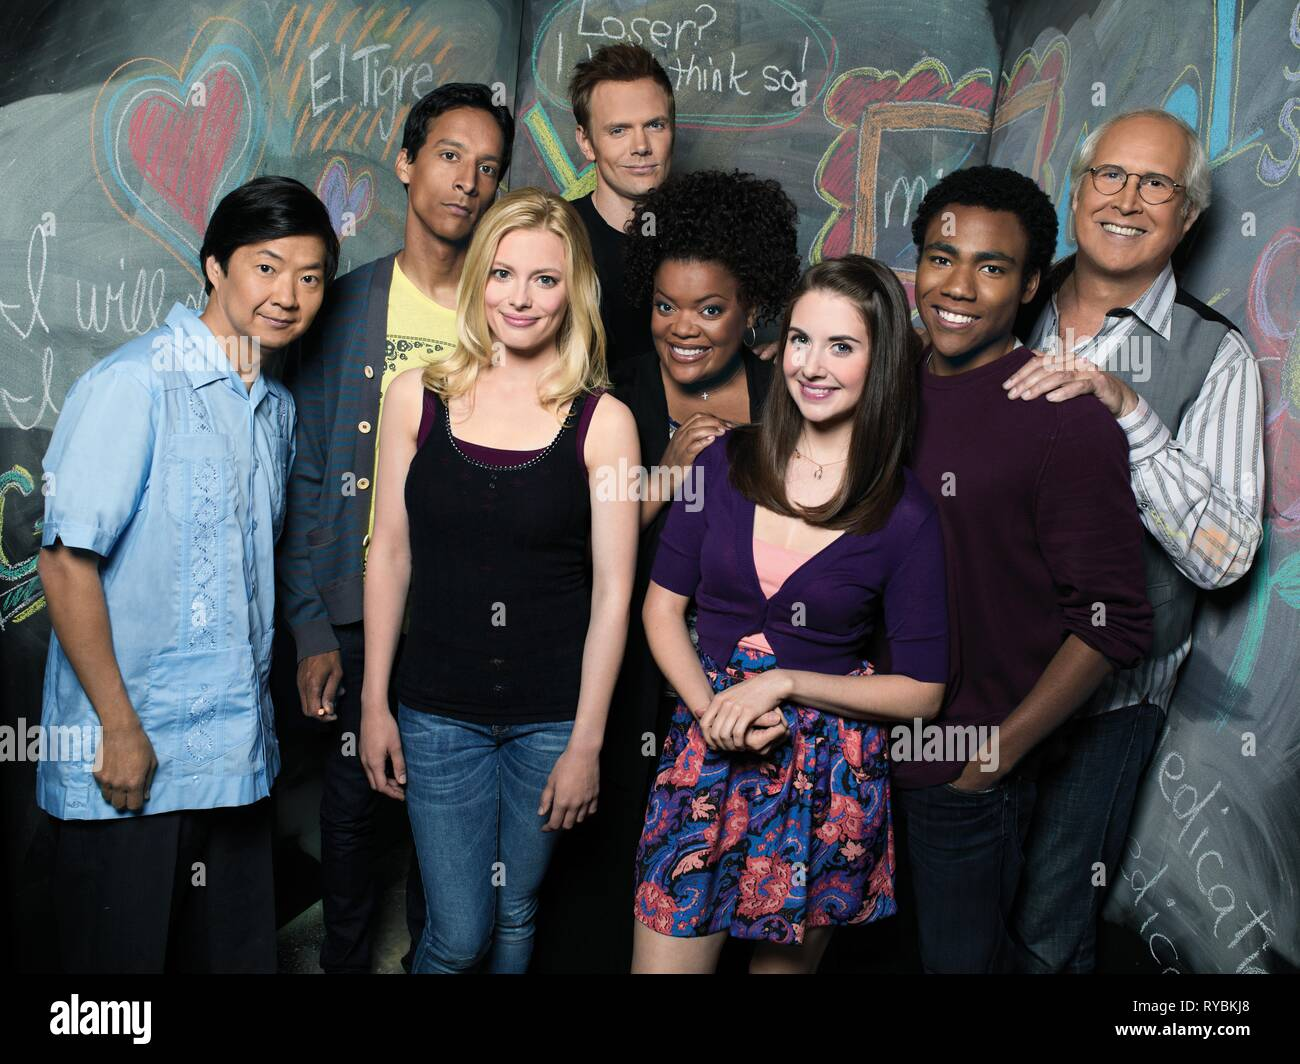 KEN JEONG, DANNY PUDI, GILLIAN JACOBS, JOEL MCHALE, YVETTE NICOLE BROWN, ALISON BRIE, DONALD GLOVER,CHEVY CHASE, COMMUNITY, 2009 - Stock Image